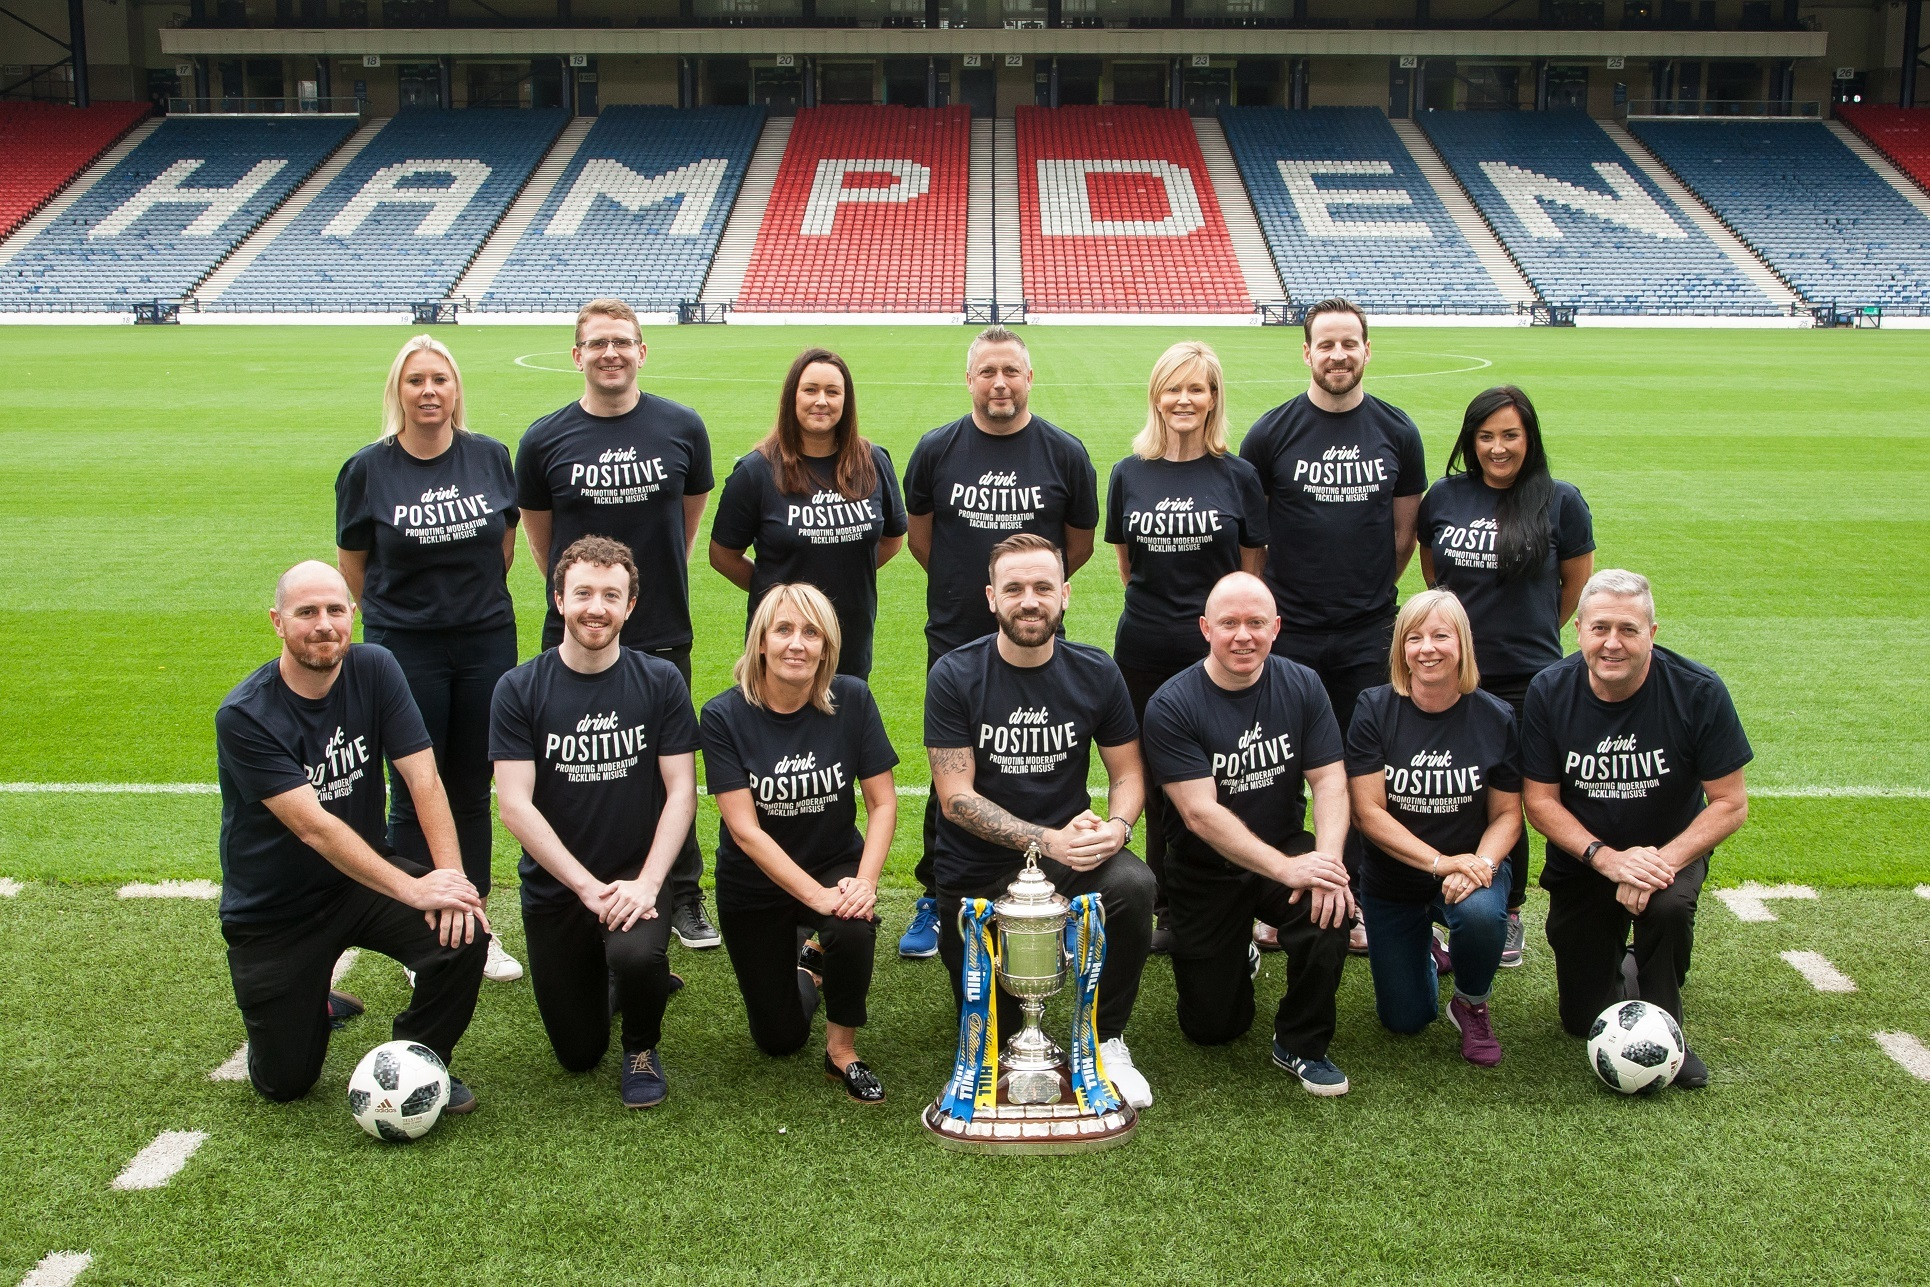 Diageo launches its Drink Responsibly campaign with the SFA represented by James McFadden, Assistant Coach, Scotland. Hampden Park, Glasgow. 20 Sep 2018. (Copyright photo by Tina Norris 07775 593 830) More info from Ian Smith, Head of Corporate Relations, Scotland, Diageo: )131 519 2045 / 07736 786 888 Copyright photograph by Tina Norris. Not to be archived or reproduced without prior permission and payment. Contact Tina on 07775 593 830 info@tinanorris.co.uk www.tinanorris.co.uk http://tinanorris.photoshelter.com